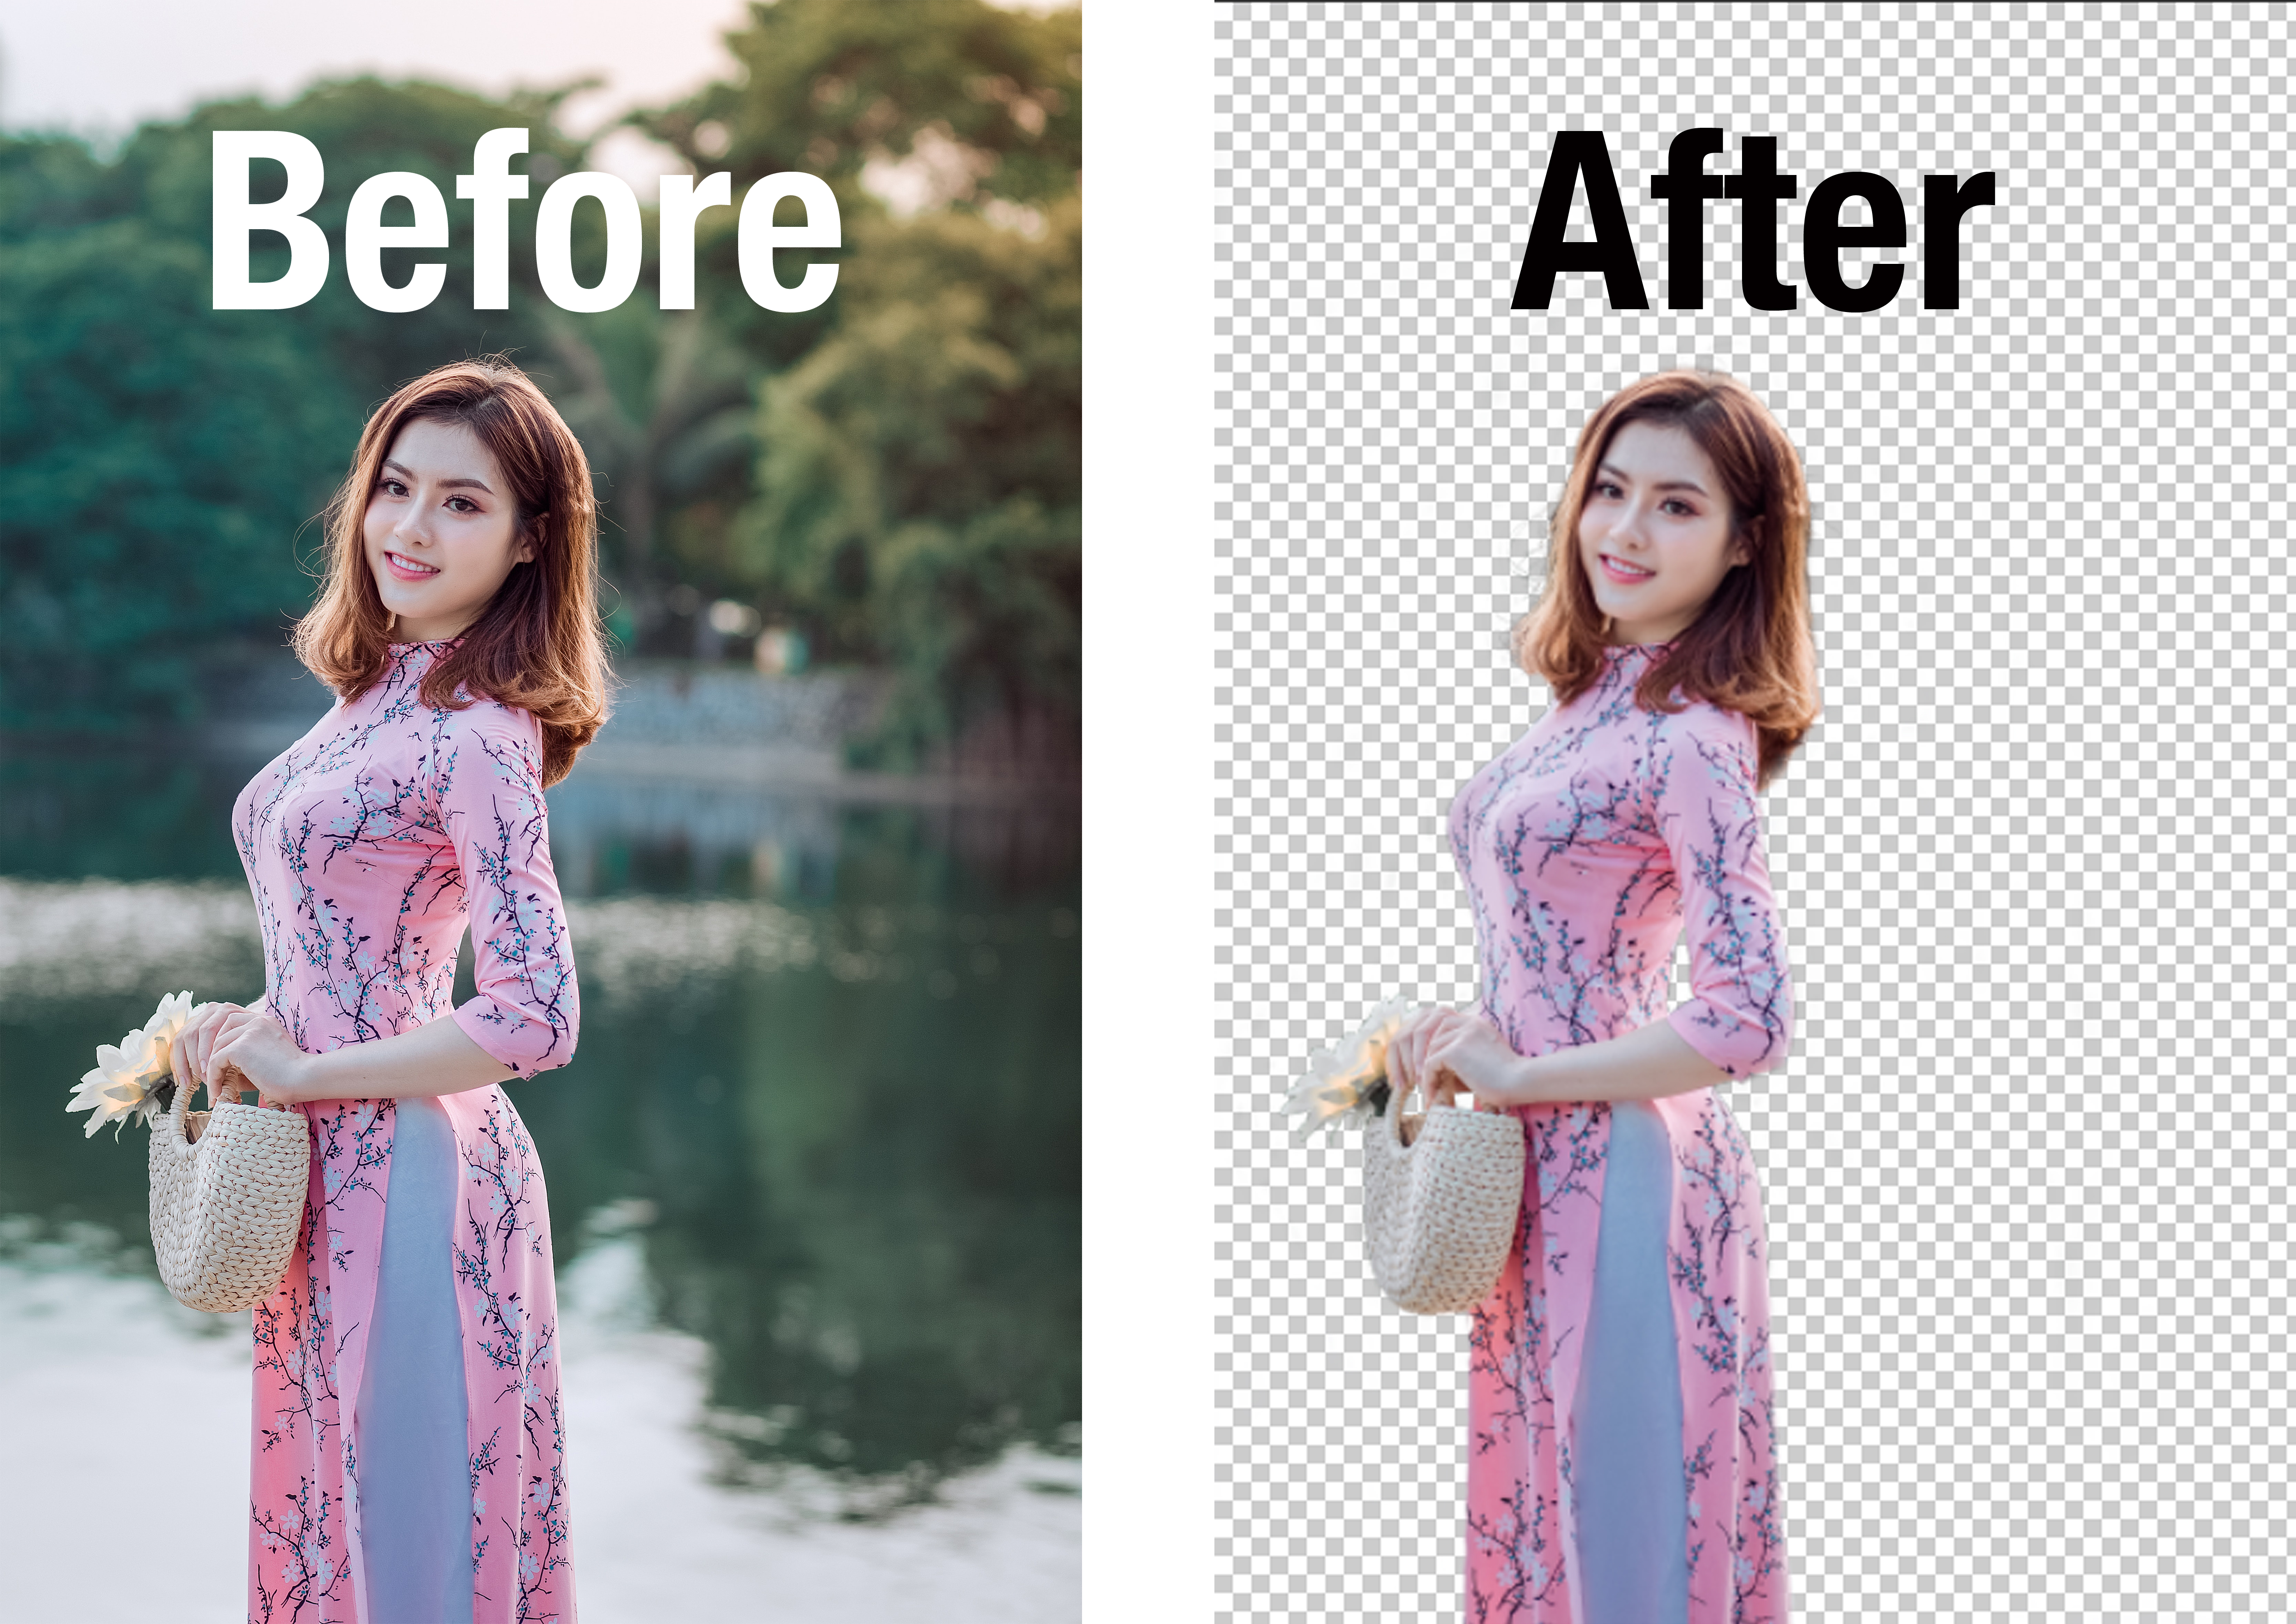 I will professionally edit your images in photoshop